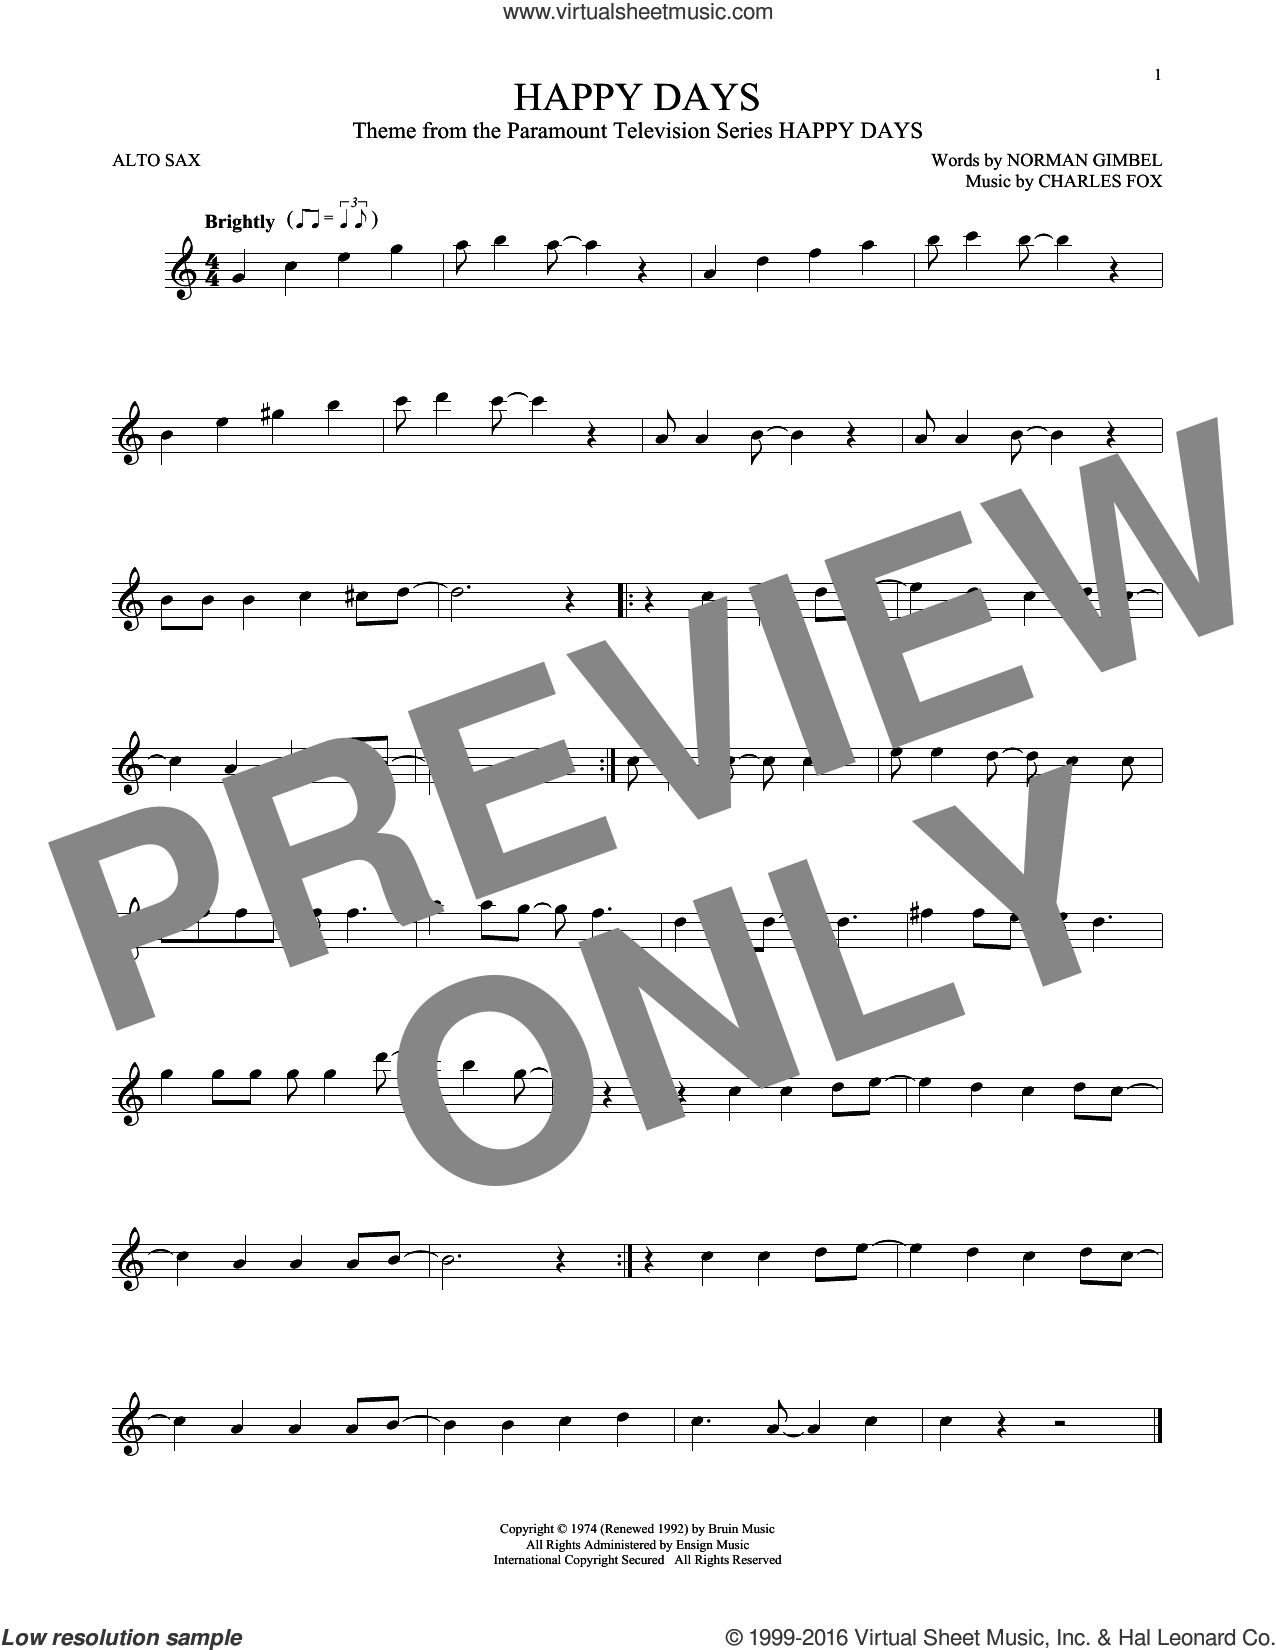 Happy Days sheet music for alto saxophone solo by Norman Gimbel, Charles Fox, Norman Gimbel & Charles Fox and Pratt and McClain, intermediate skill level